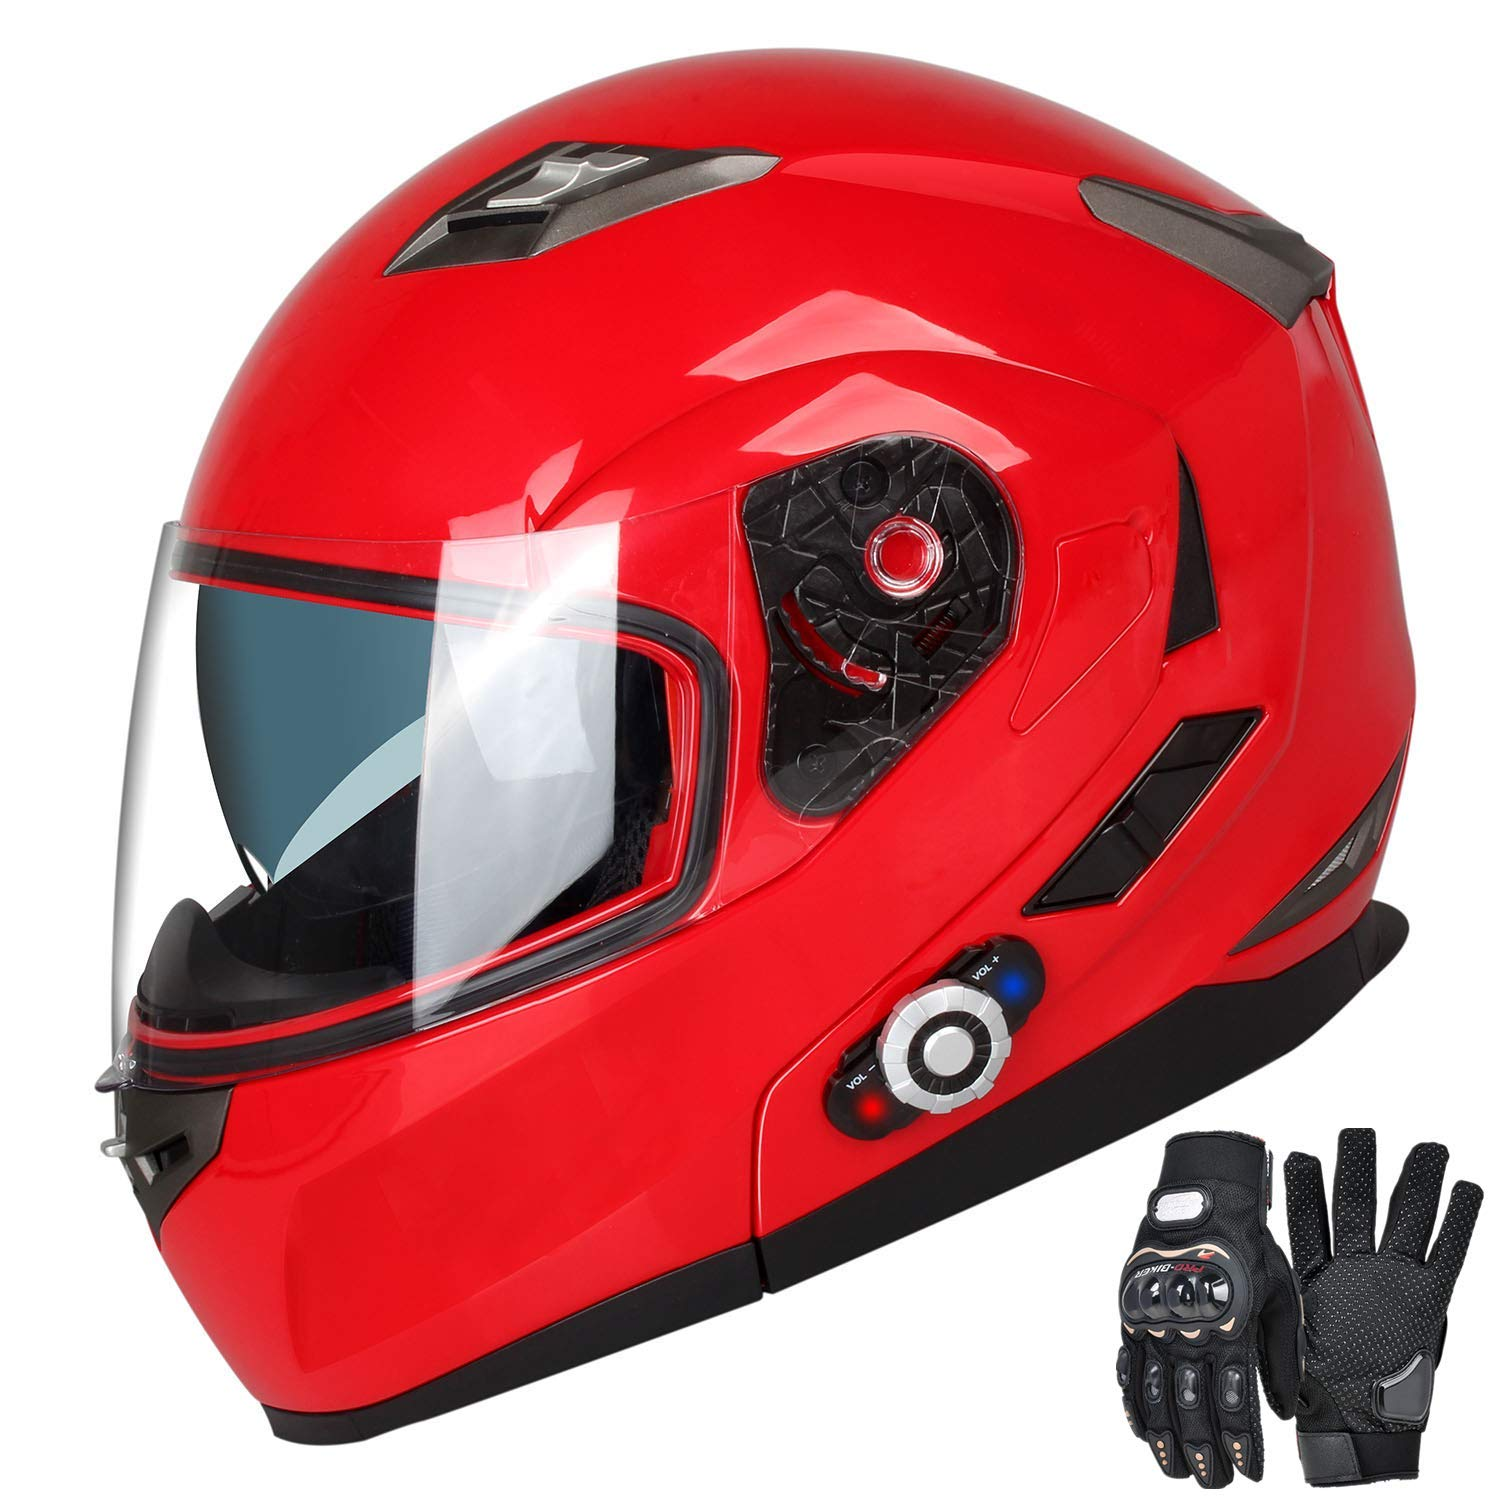 Motorcycle Bluetooth Helmets,FreedConn Flip up Dual Visors Full Face Helmet,Built-in Integrated Intercom Communication System(Range 500M,2-3Riders Pairing,FM radio,Waterproof,L,Red) by FreedConn (Image #1)